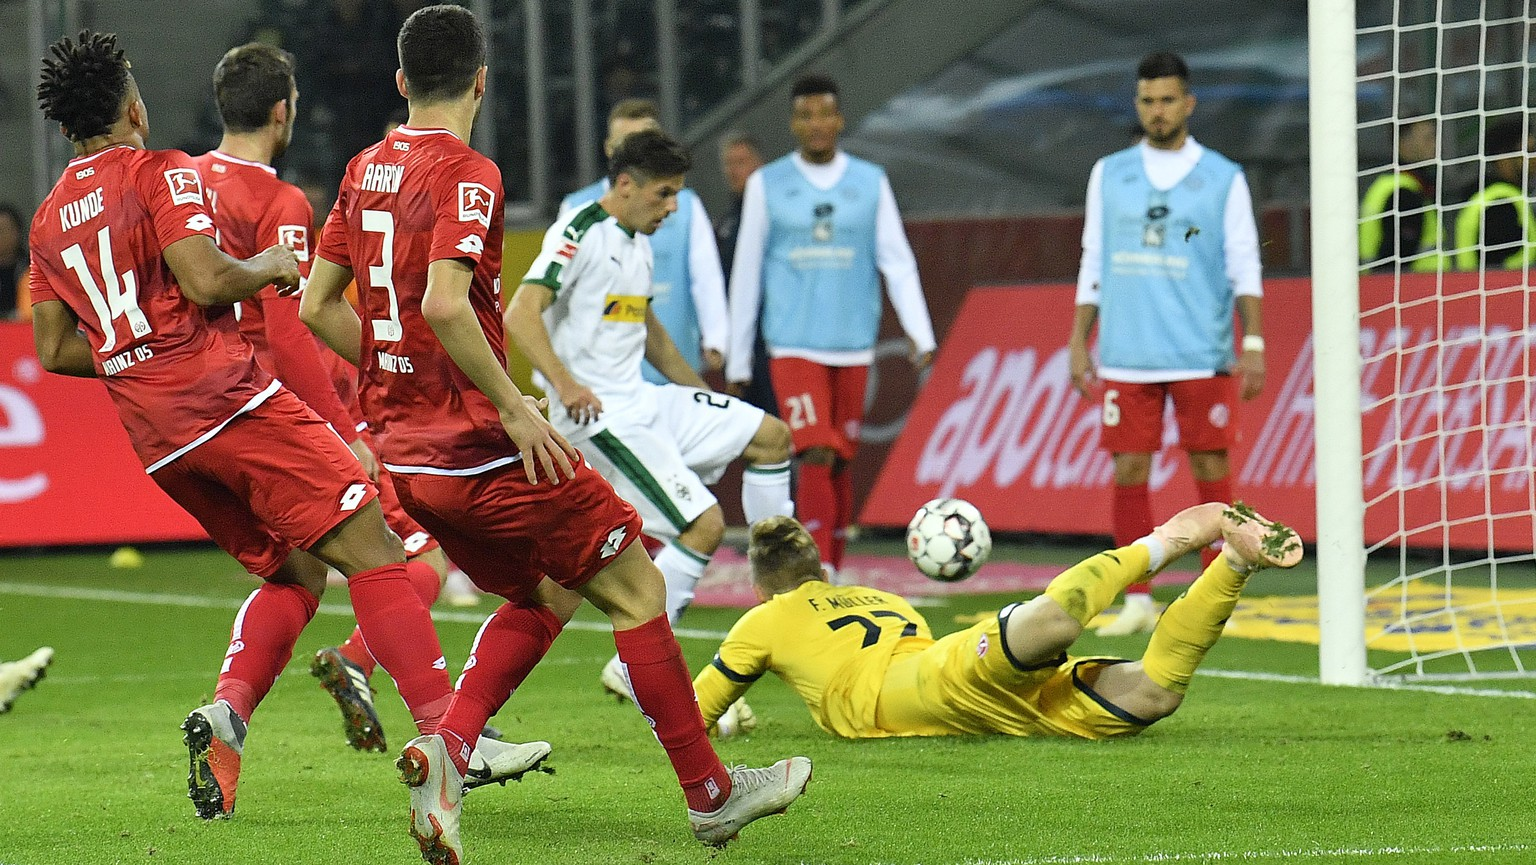 Mainz's defense watching Moenchengladbach's Jonas Hofmann scoring his second goal during the German Bundesliga soccer match between Borussia Moenchengladbach and FSV Mainz 05 in Moenchengladbach, Germany, Sunday, Oct. 21, 2018. (AP Photo/Martin Meissner)